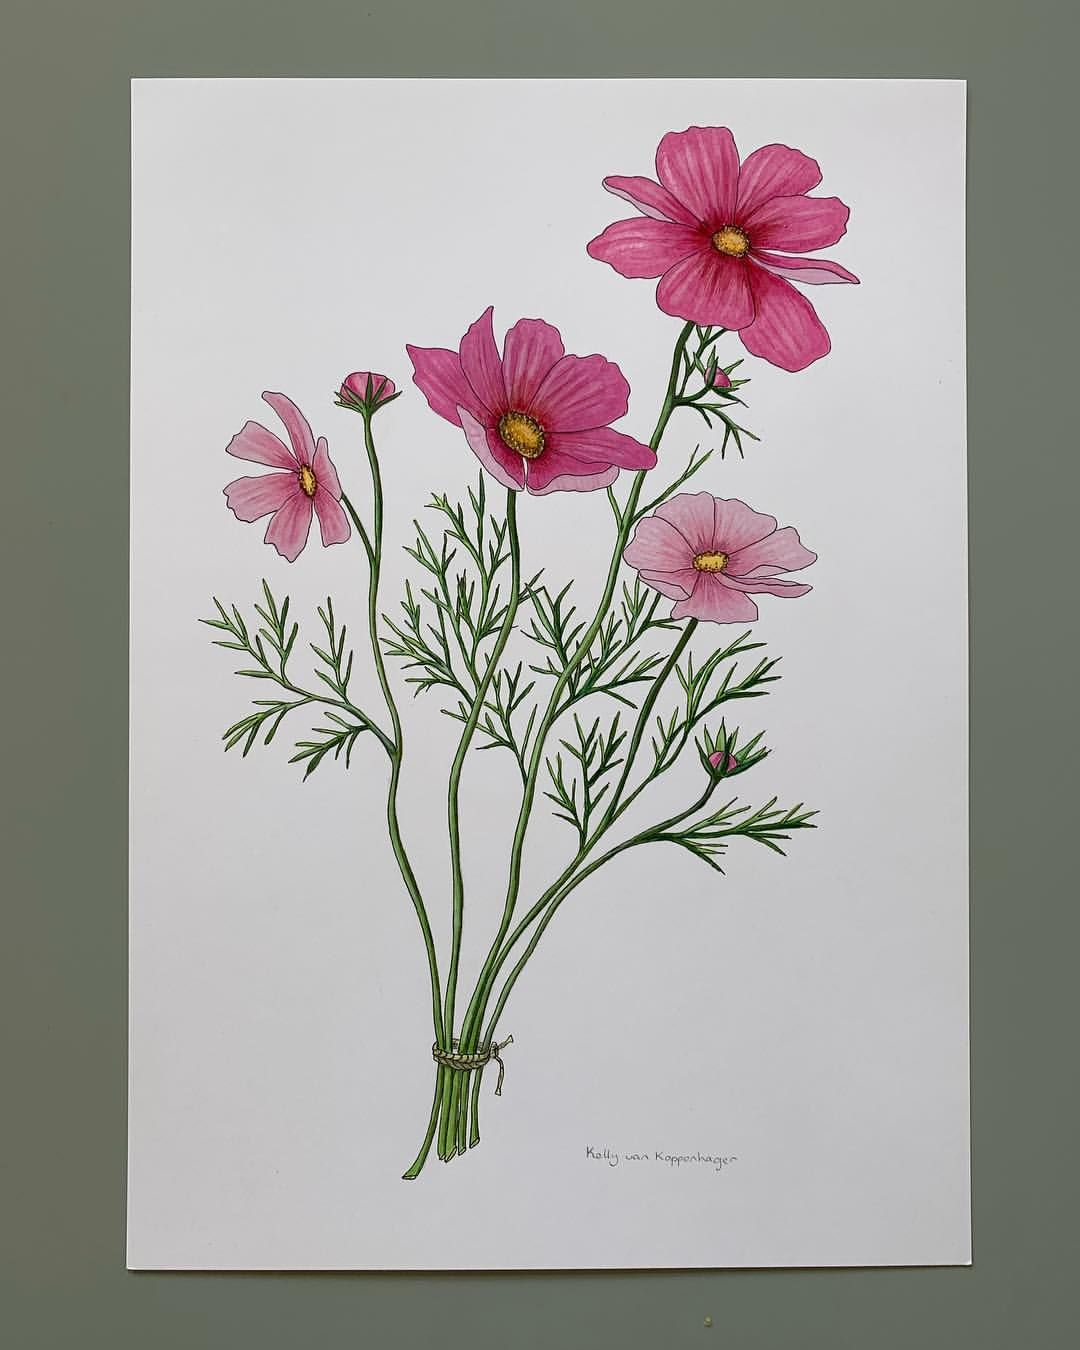 Made This Cosmos Flower I Think I Ll Put Them In My Vegetable Garden This Year Cosmos Flowers Wildf Cosmos Flowers Flower Sketches Flower Painting